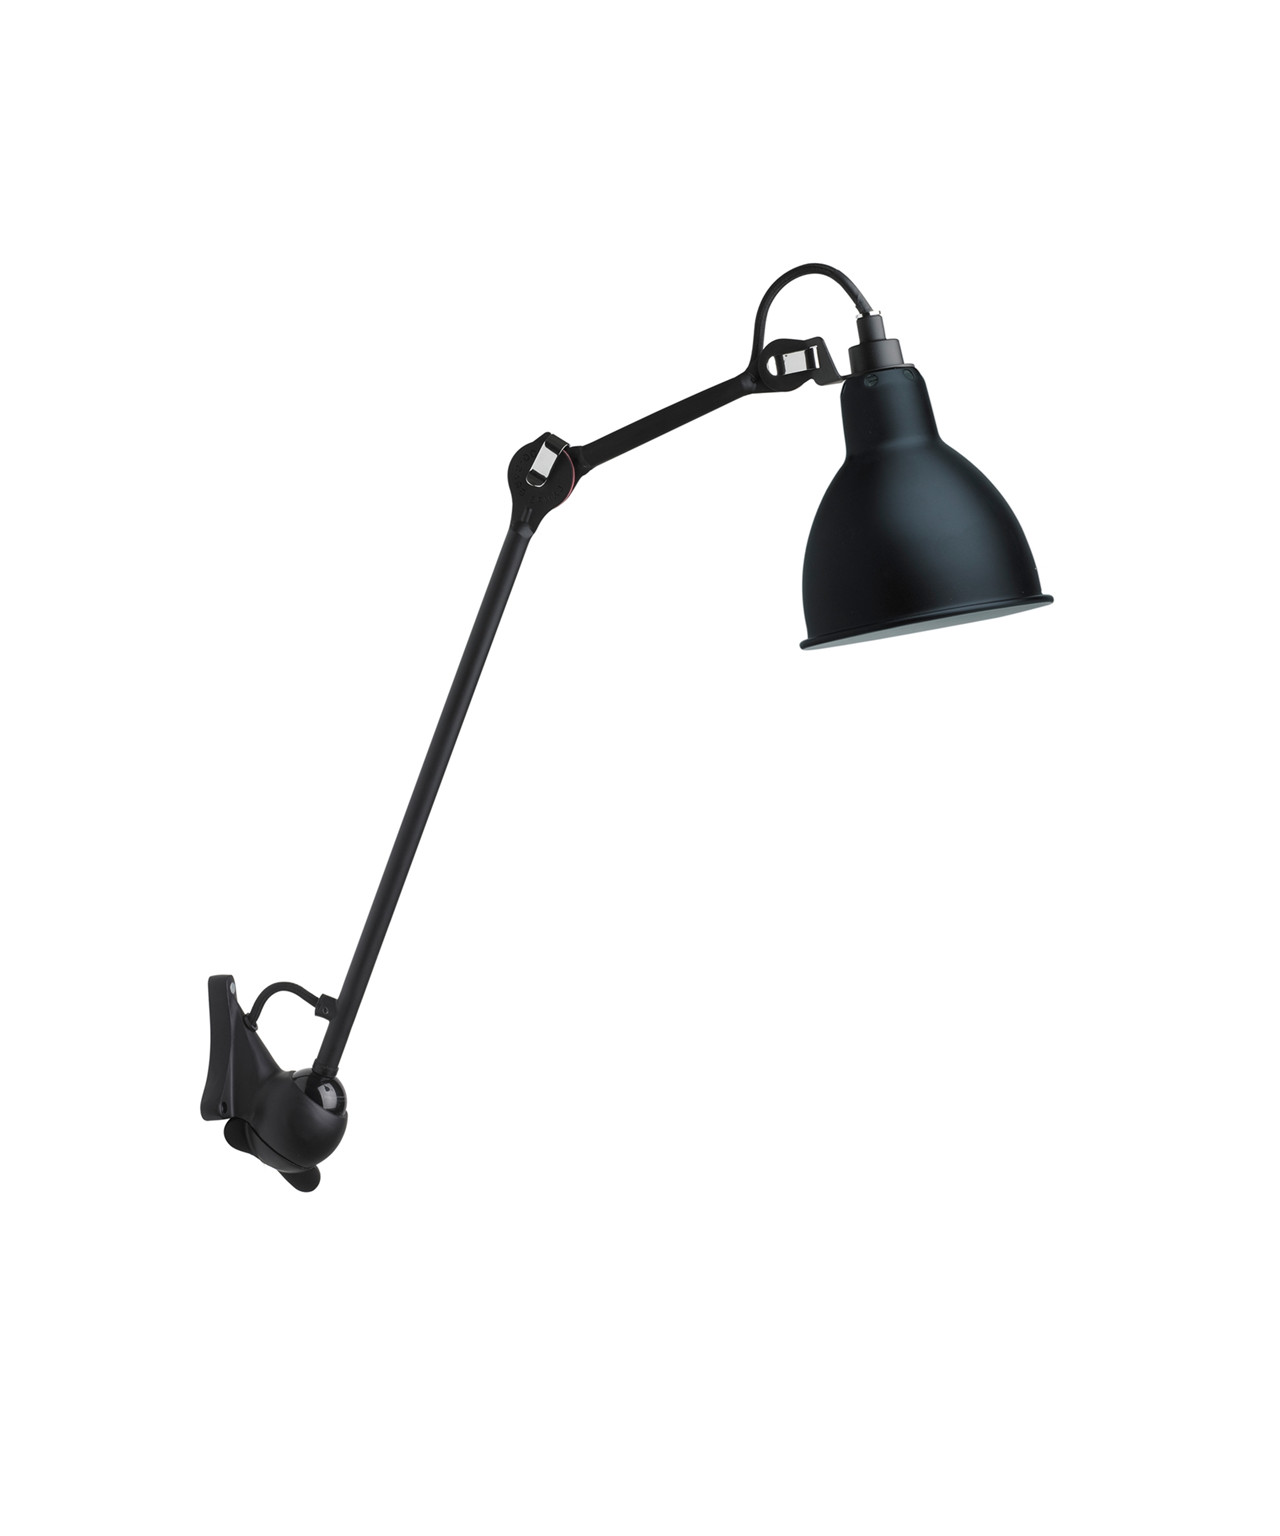 Image of   222 Væglampe Sort/Satin - Lampe Gras